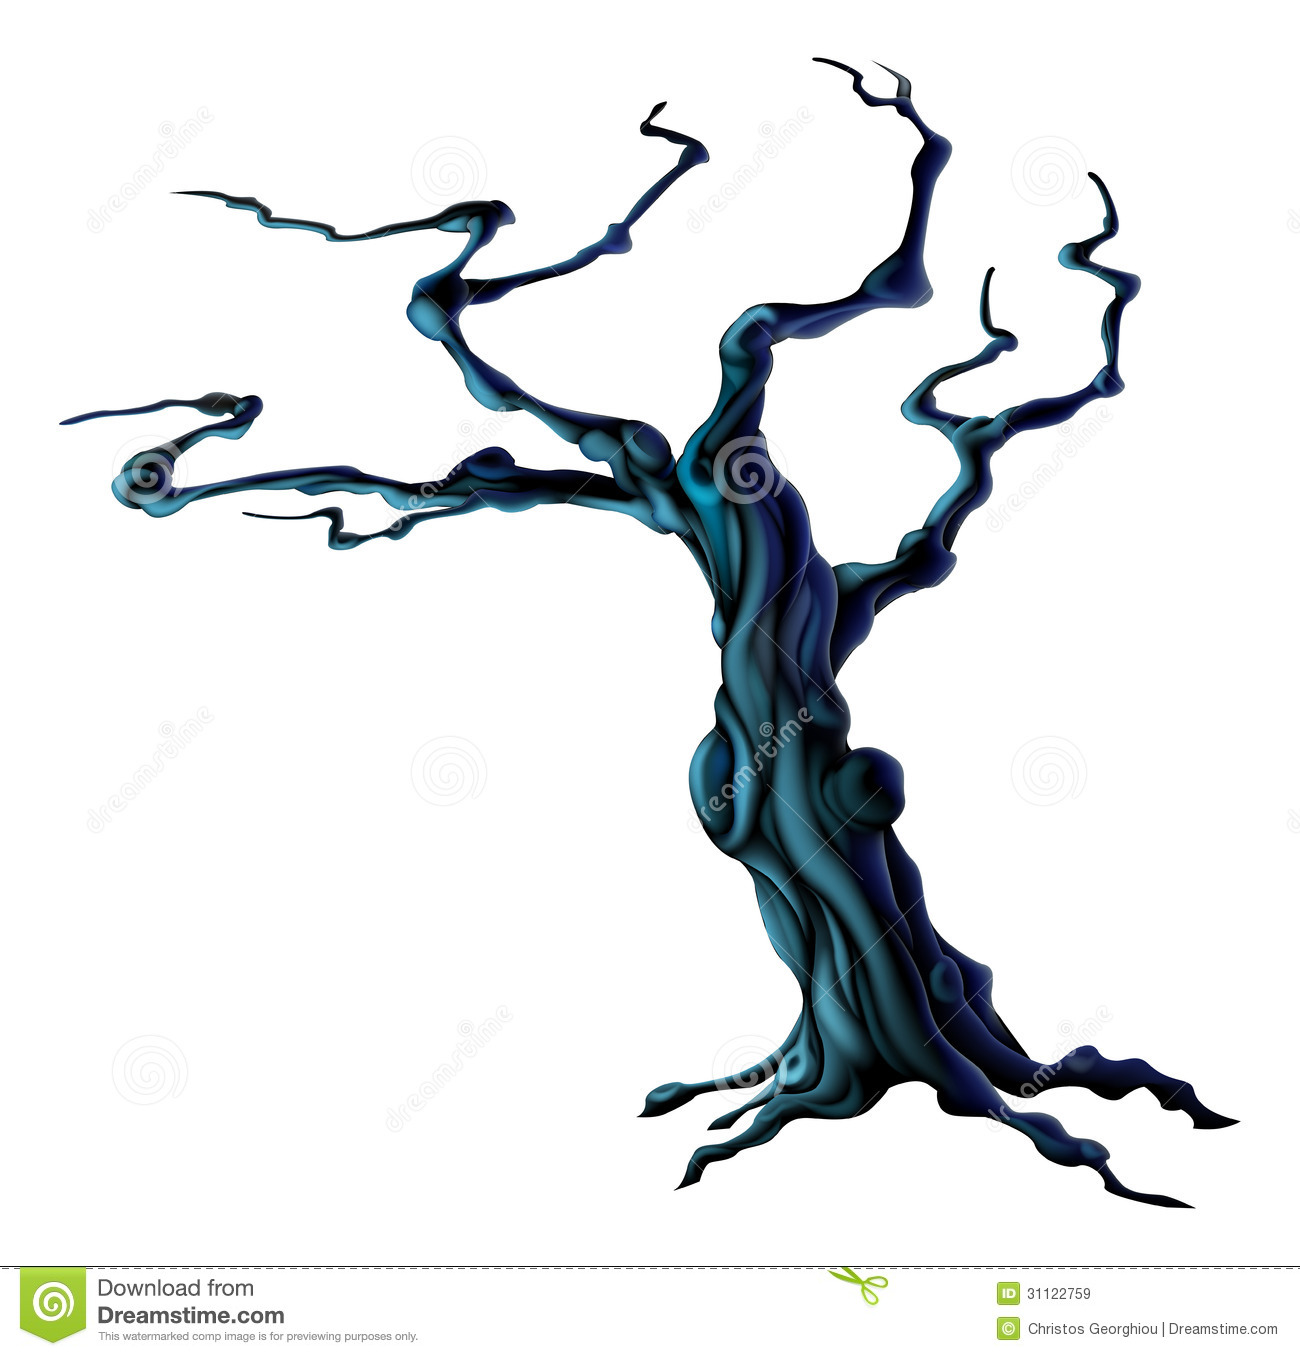 Branch clipart sanga. Fall tree silhouette at